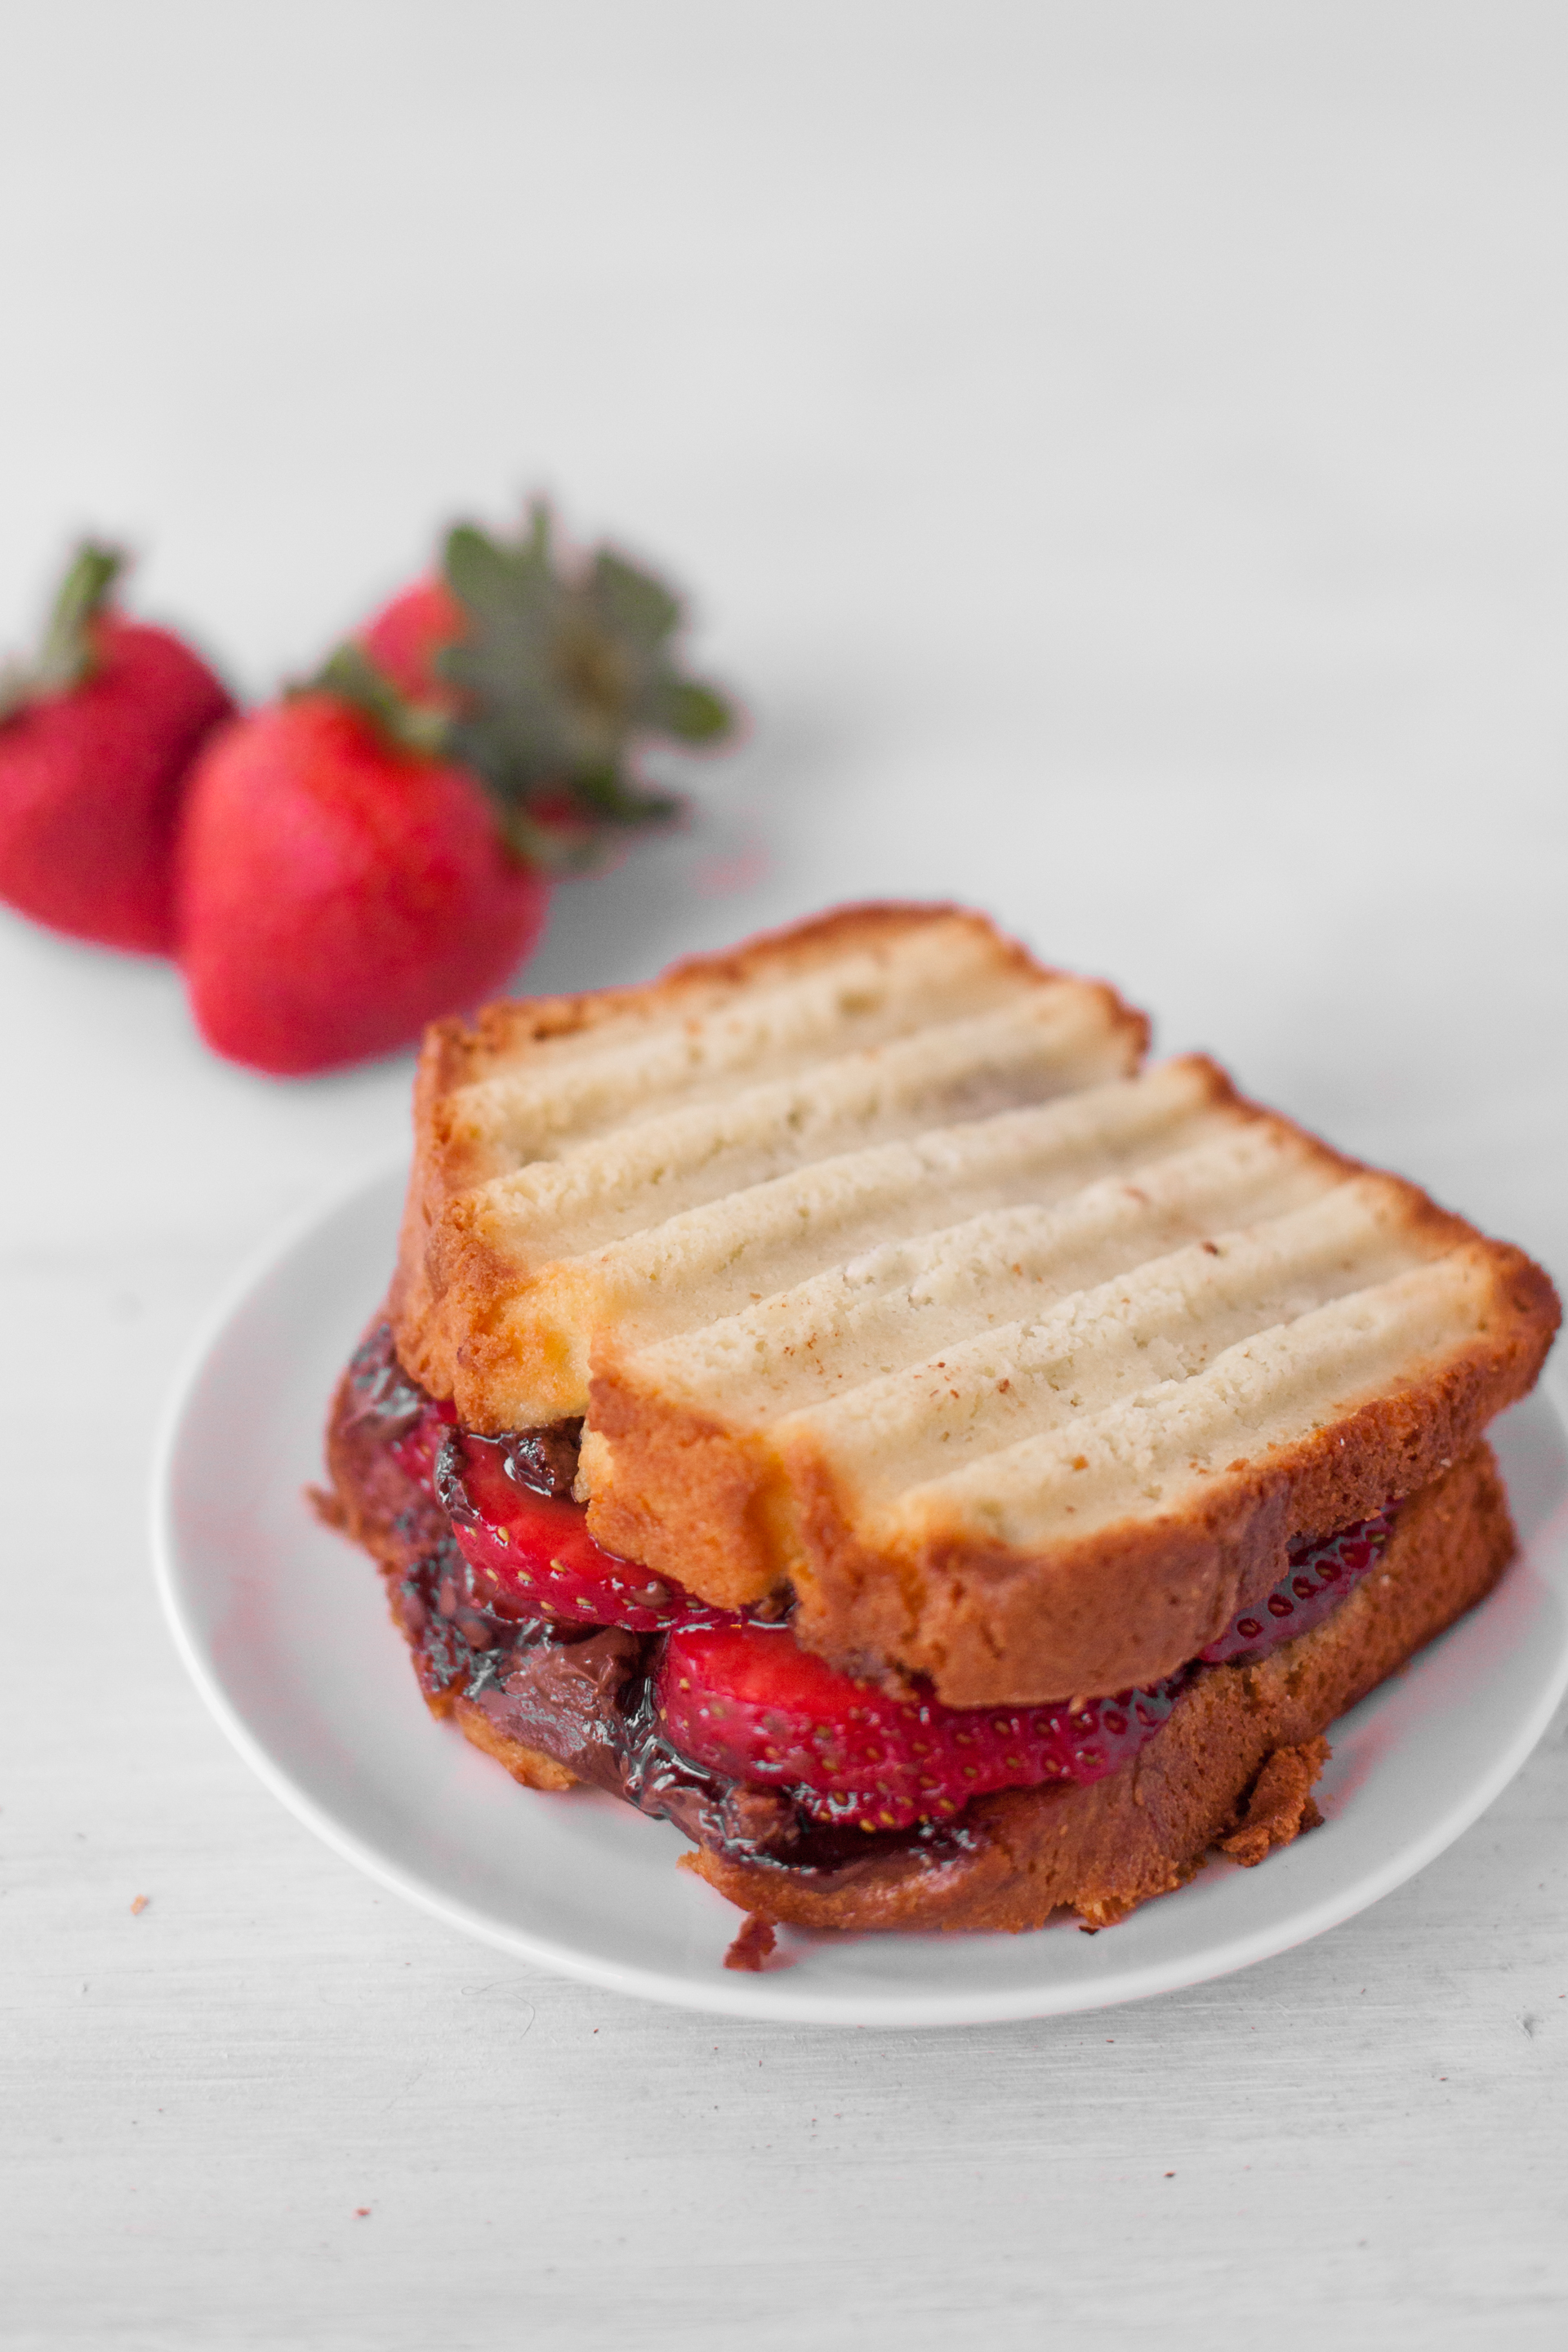 Strawberry Nutella Sandwich Recipe